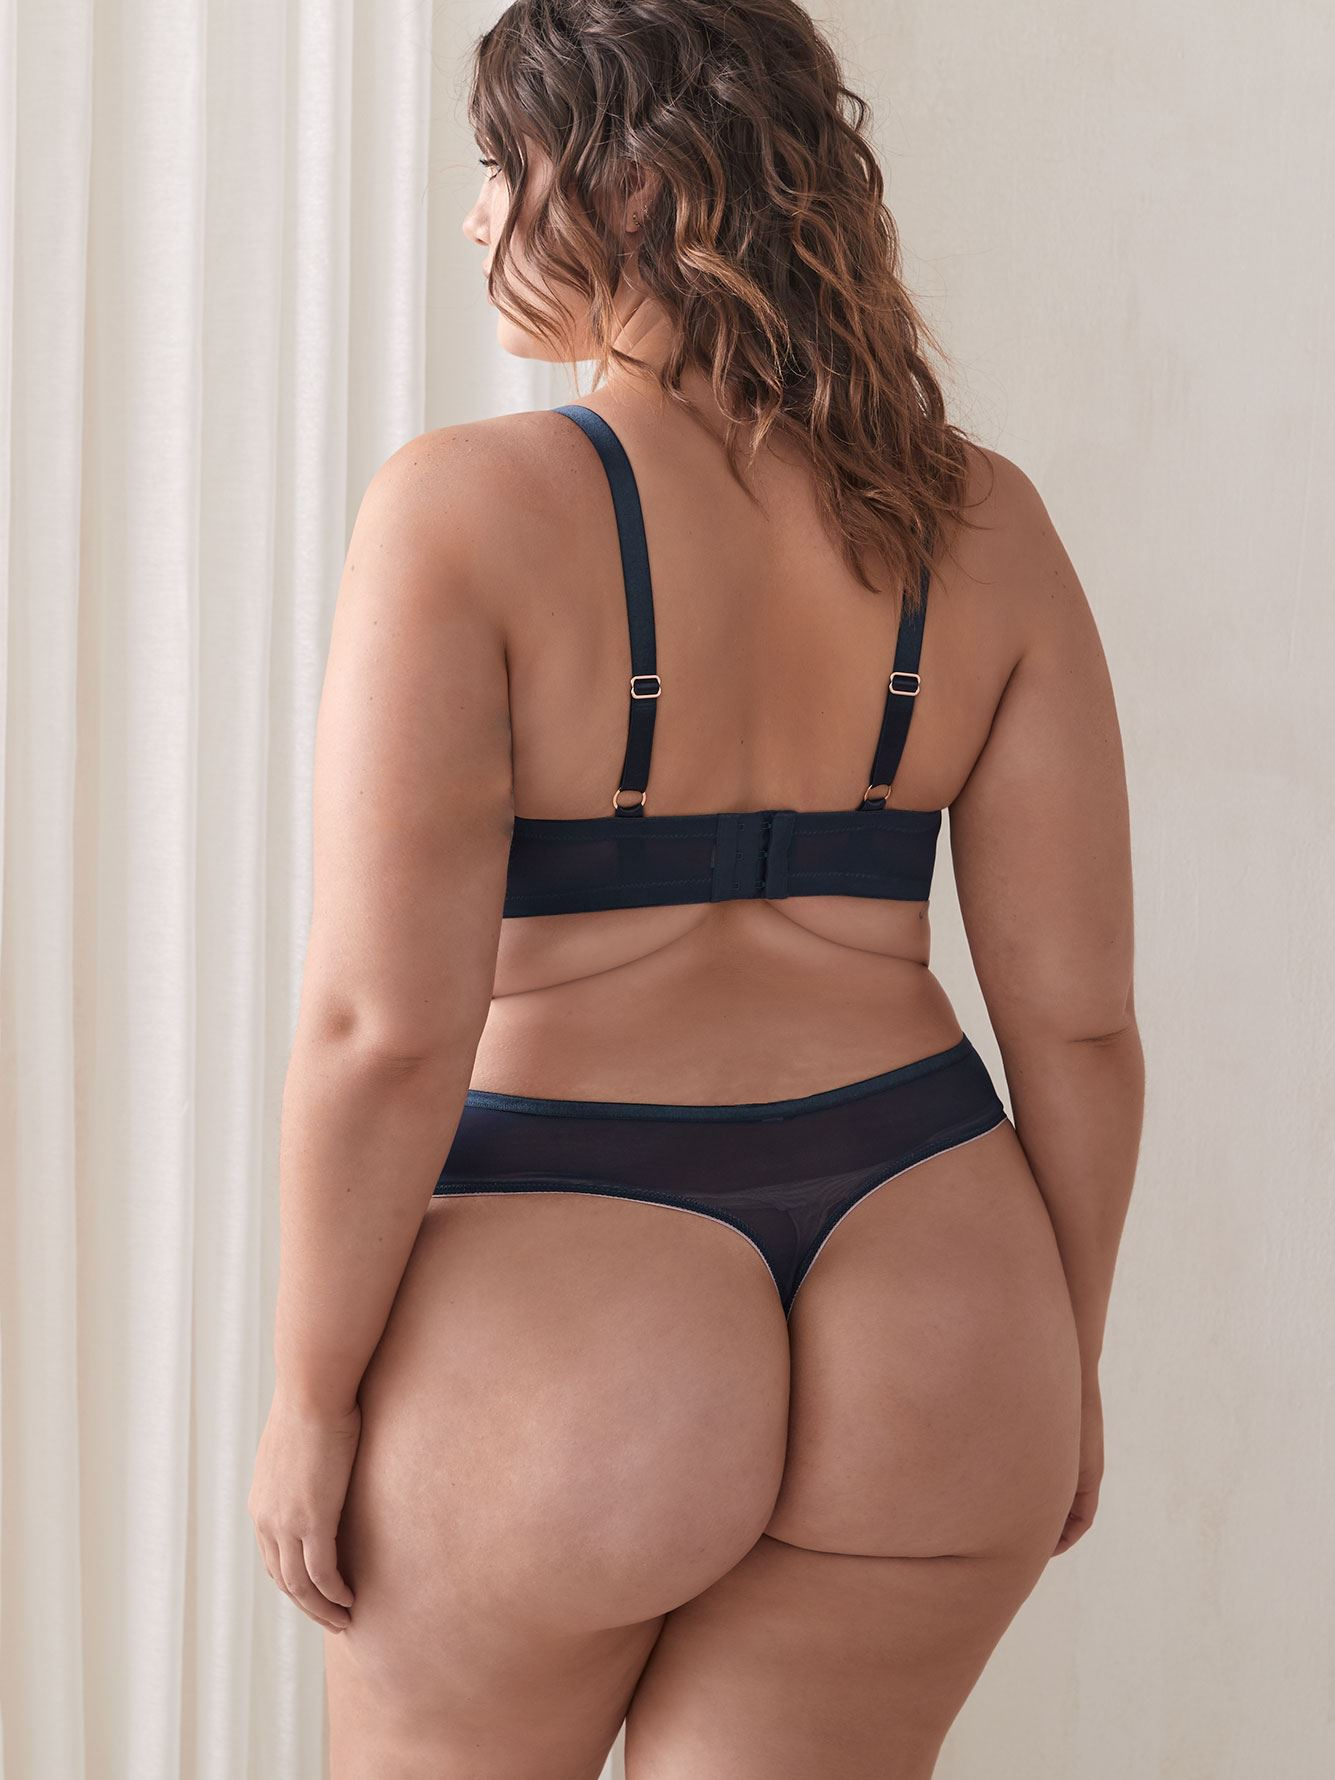 Demi Cup Diva Bra with Embroidery, G & H Cups - Ashley Graham